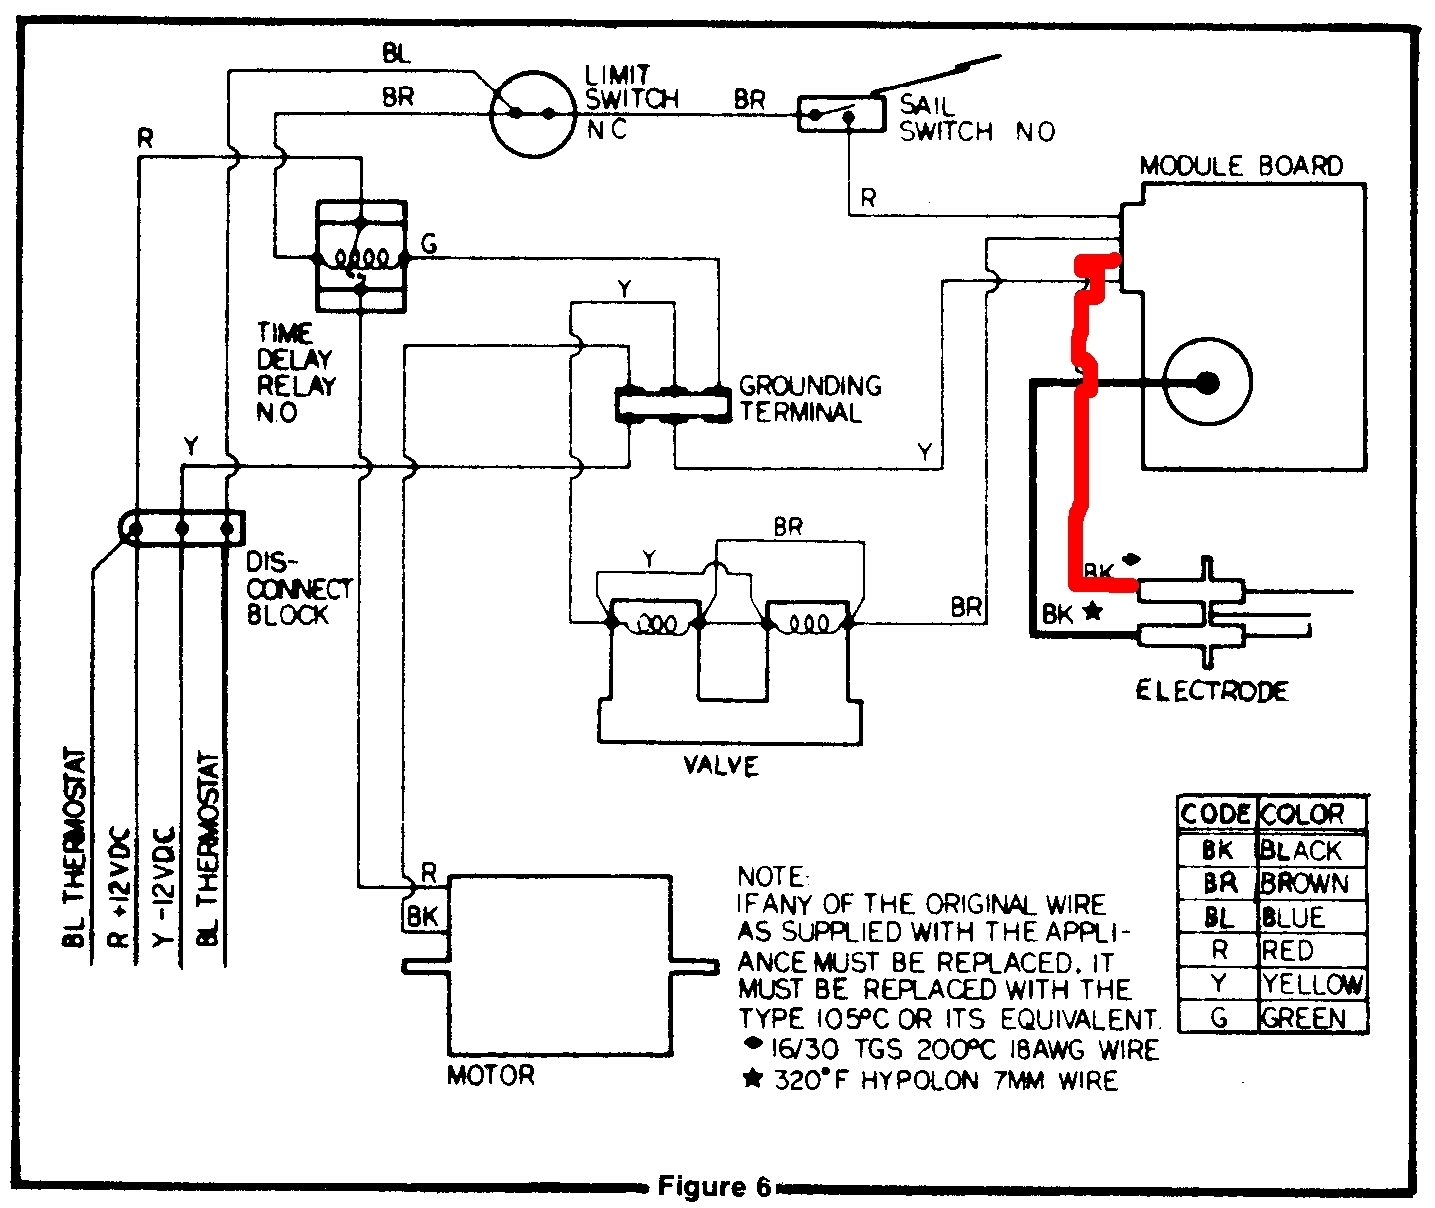 dometic rv thermostat wiring diagram on wiring diagram for dometic